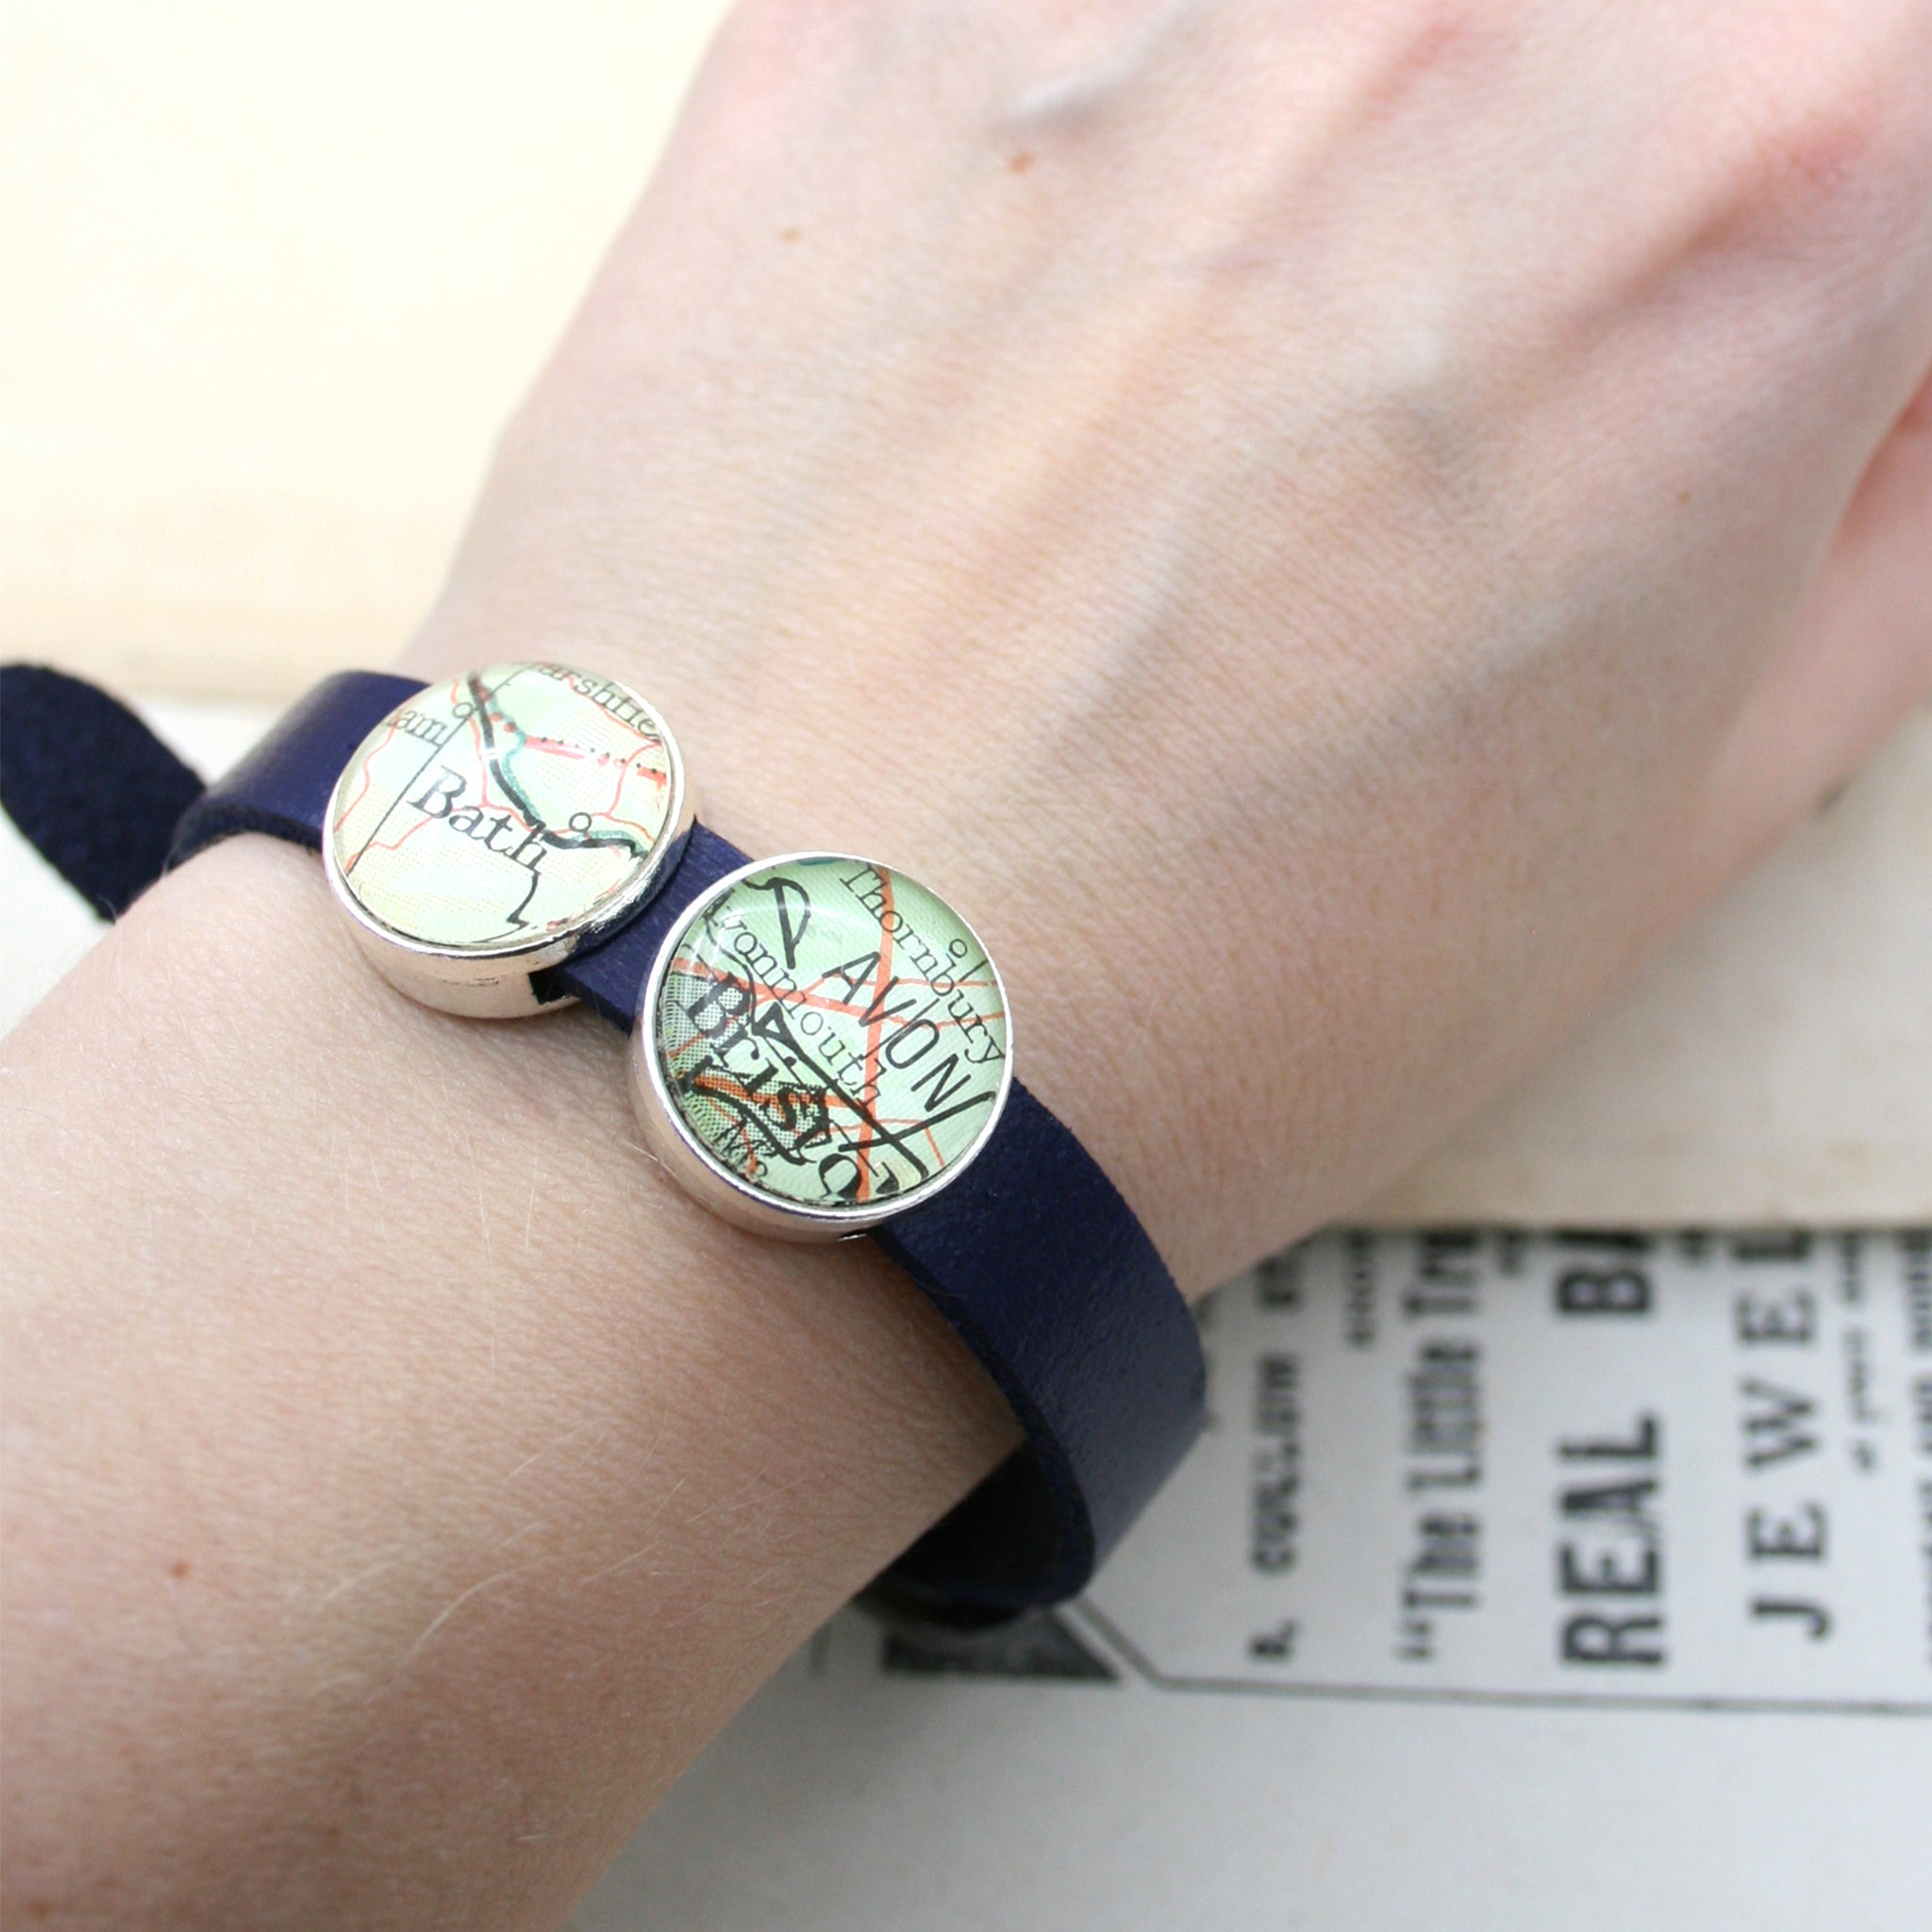 Worn on hand blue leather bracelet featuring map locations